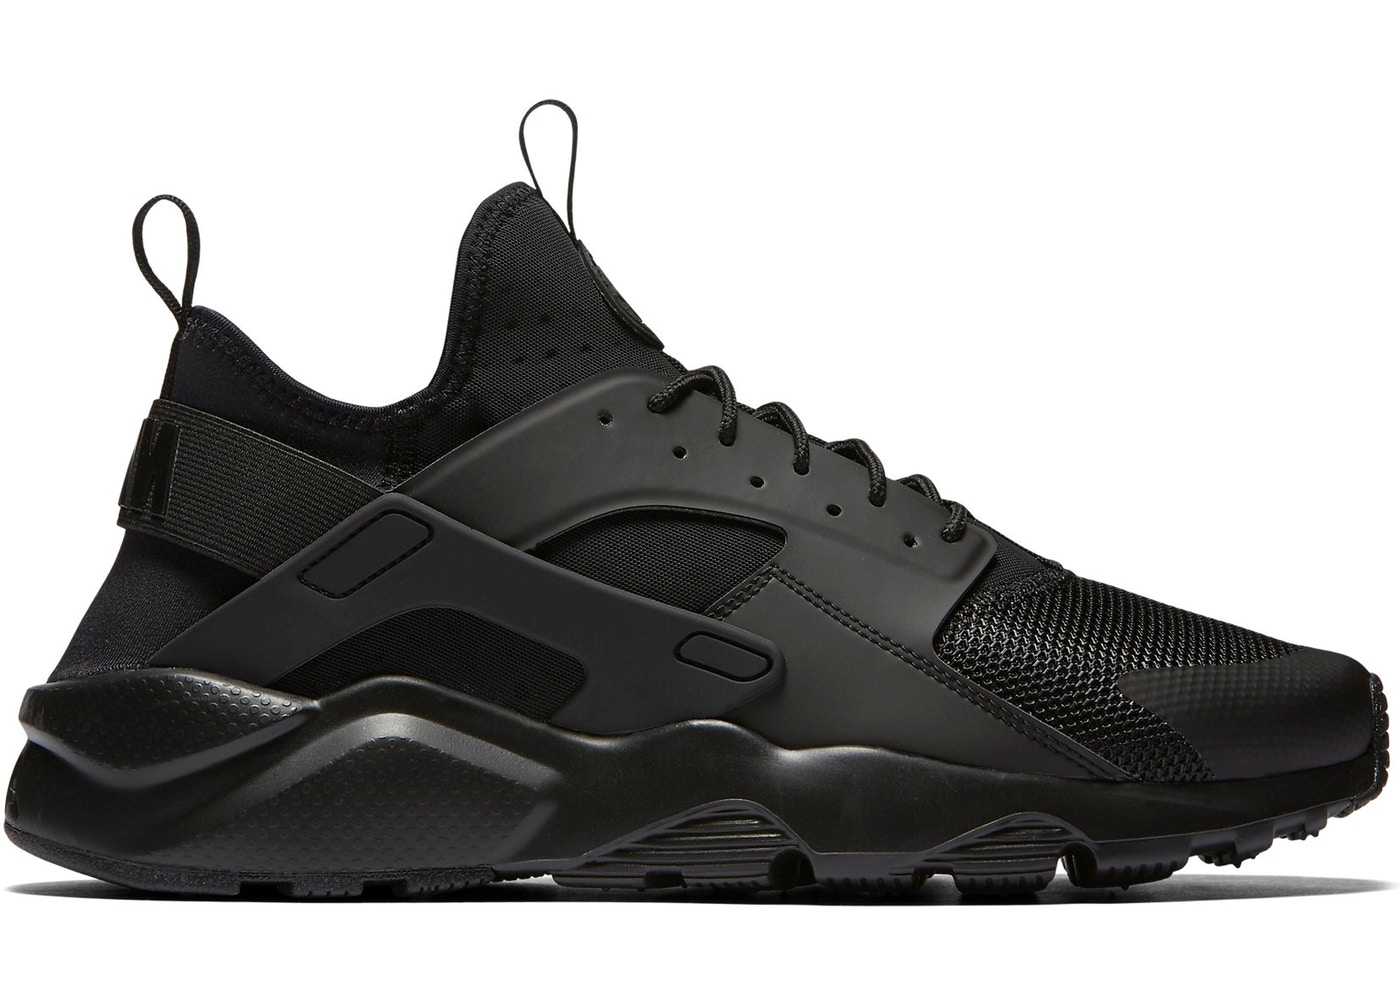 NIKE AIR HUARACHE RUN ULTRA 819685 002 BLACK/BLACK-BLACK DEADSTOCK BRAND NEW